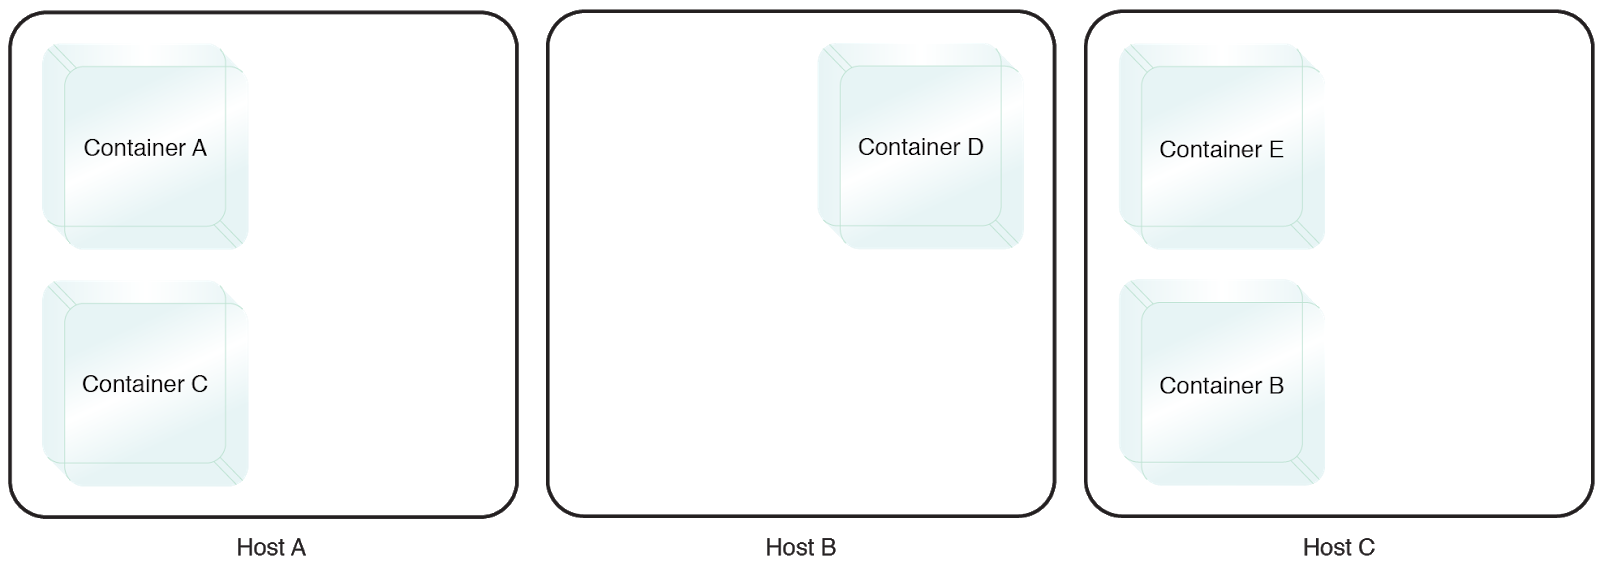 Multi-Container Isolation Control: Containers A and B need to be isolated on two different physical hosts.